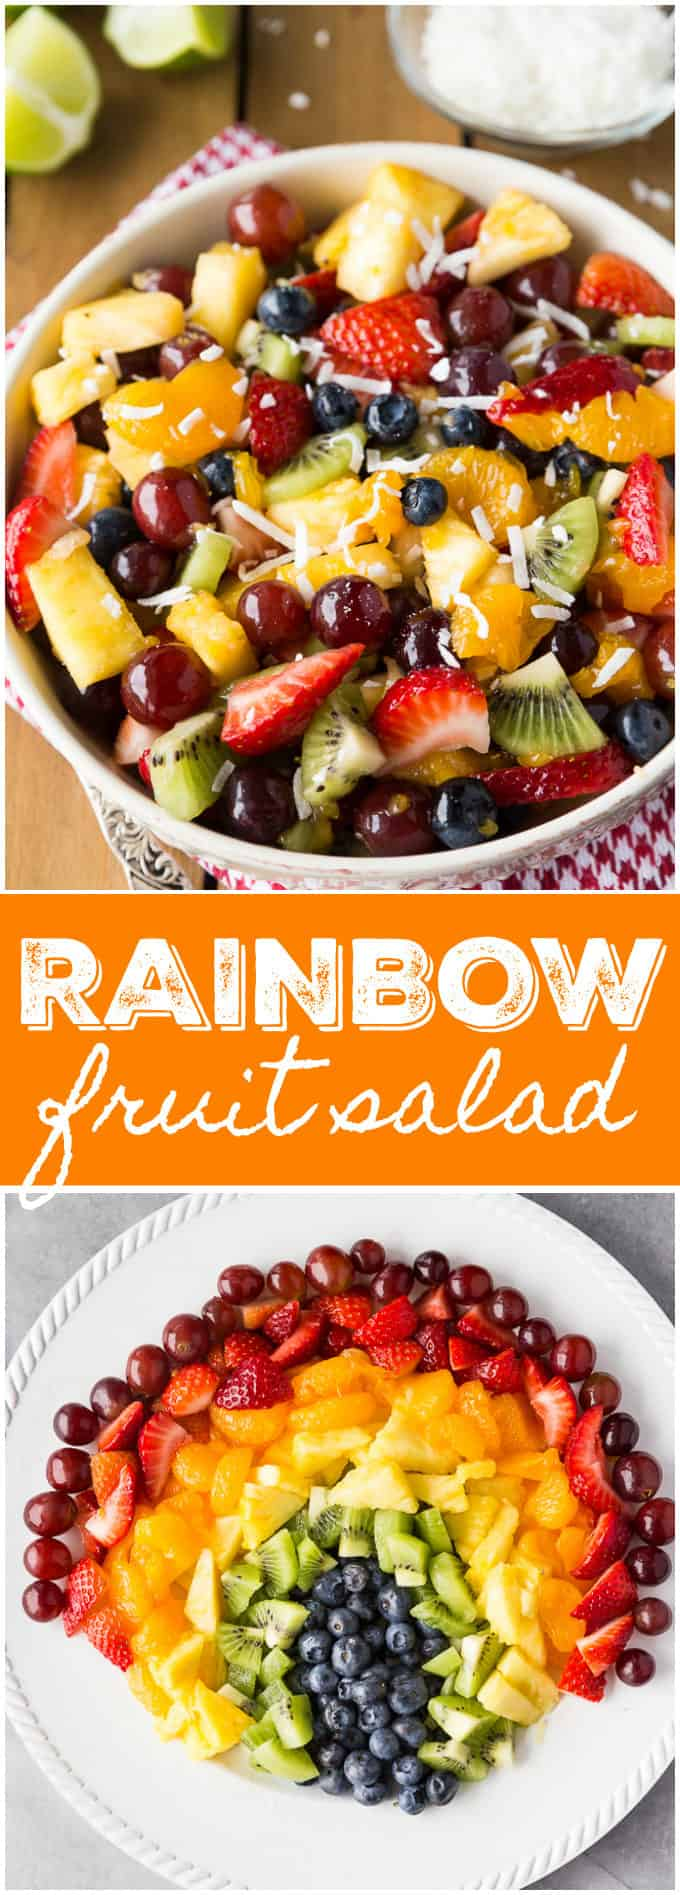 Rainbow Fruit Salad - The most beautiful recipe! Every color is represented with a sweet coconut lime dressing for the most uplifting fruit salad.